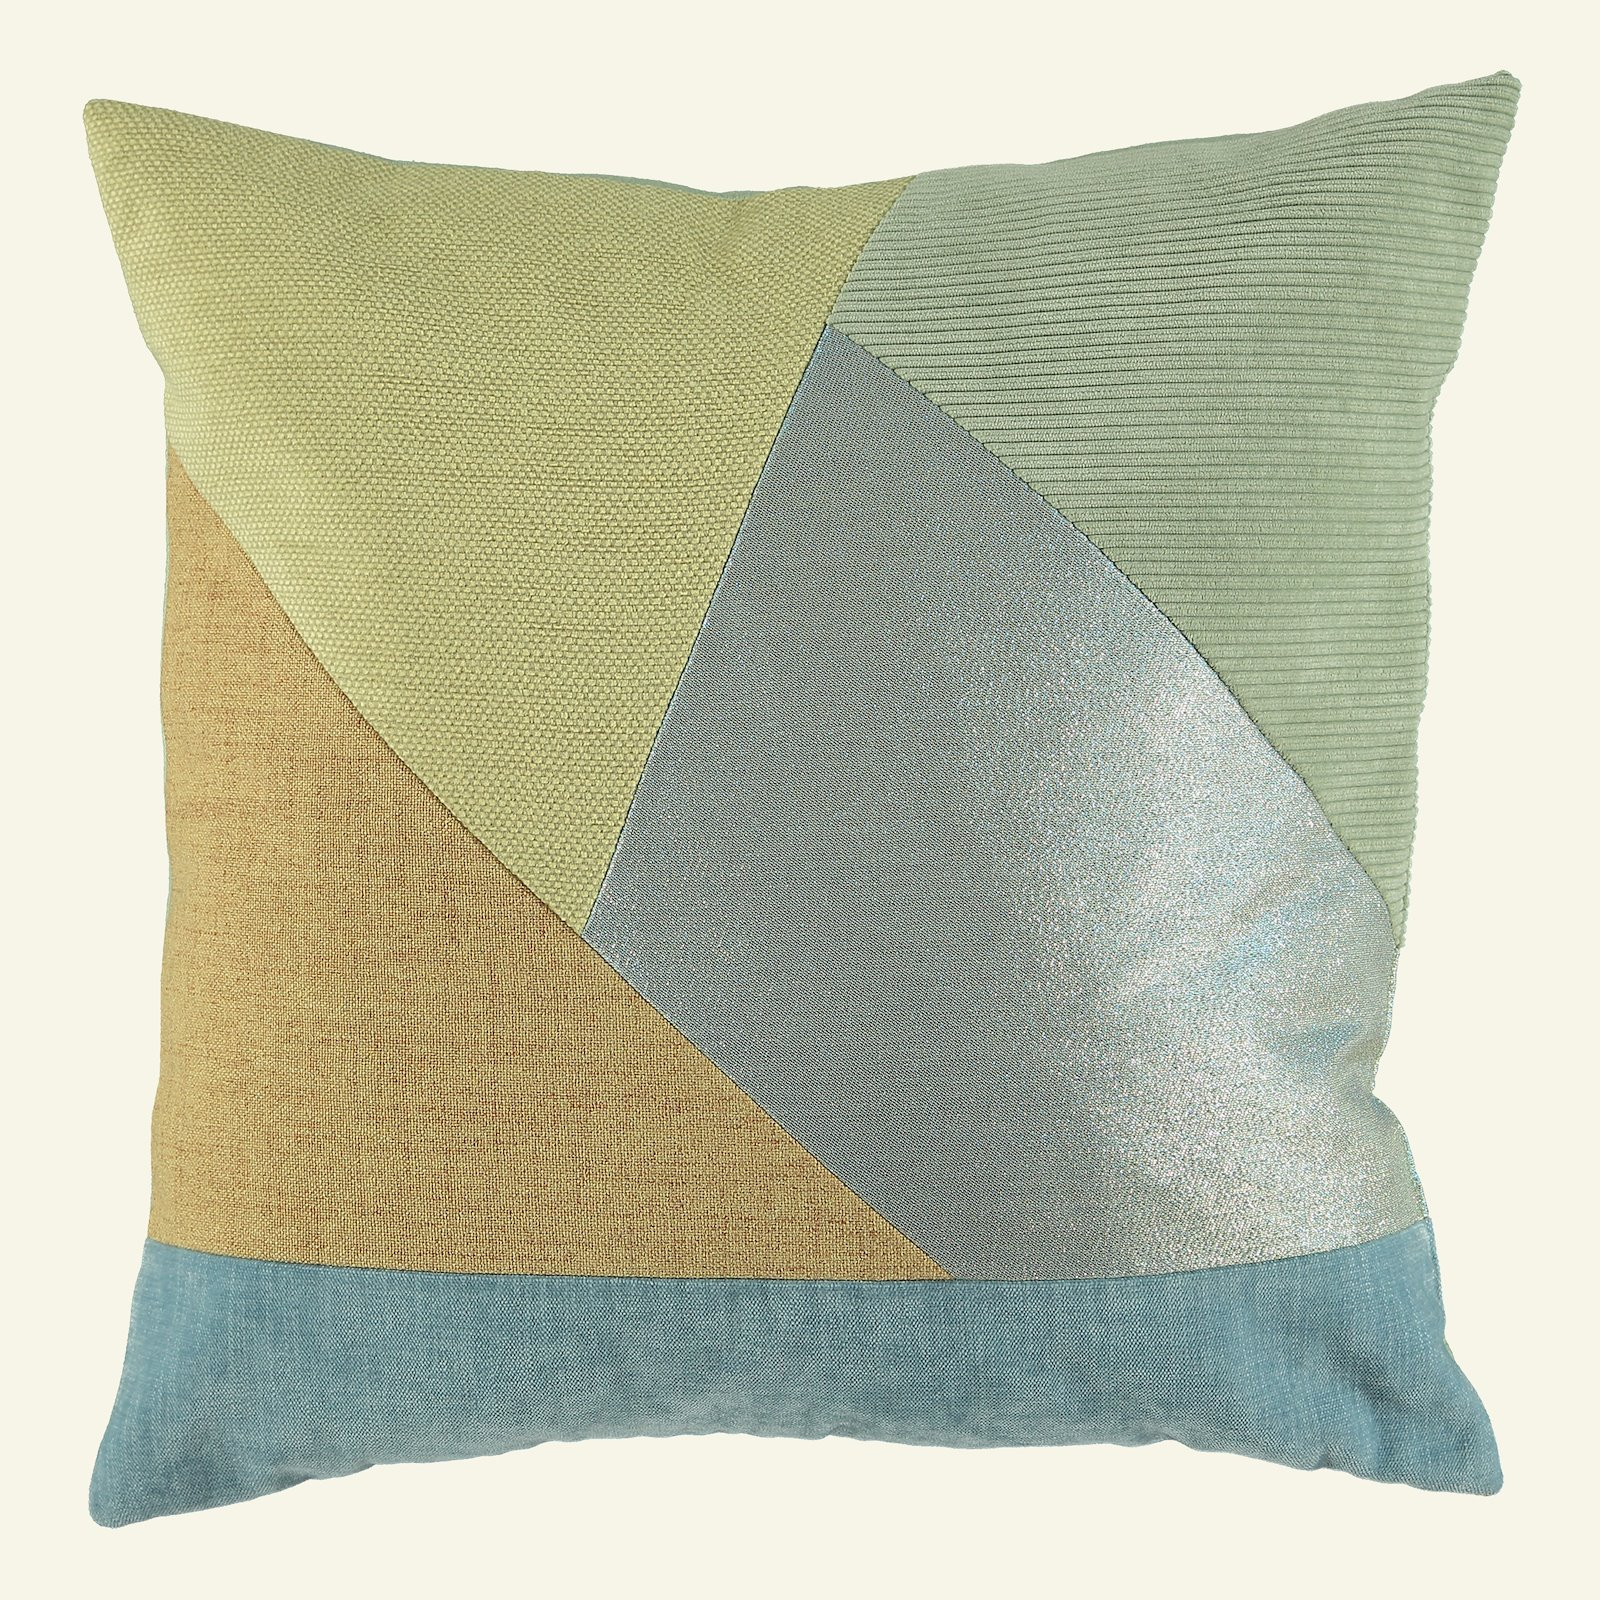 Woven jacquard with gold/blue lurex 823947_824052_824049_400321_824035_sskit